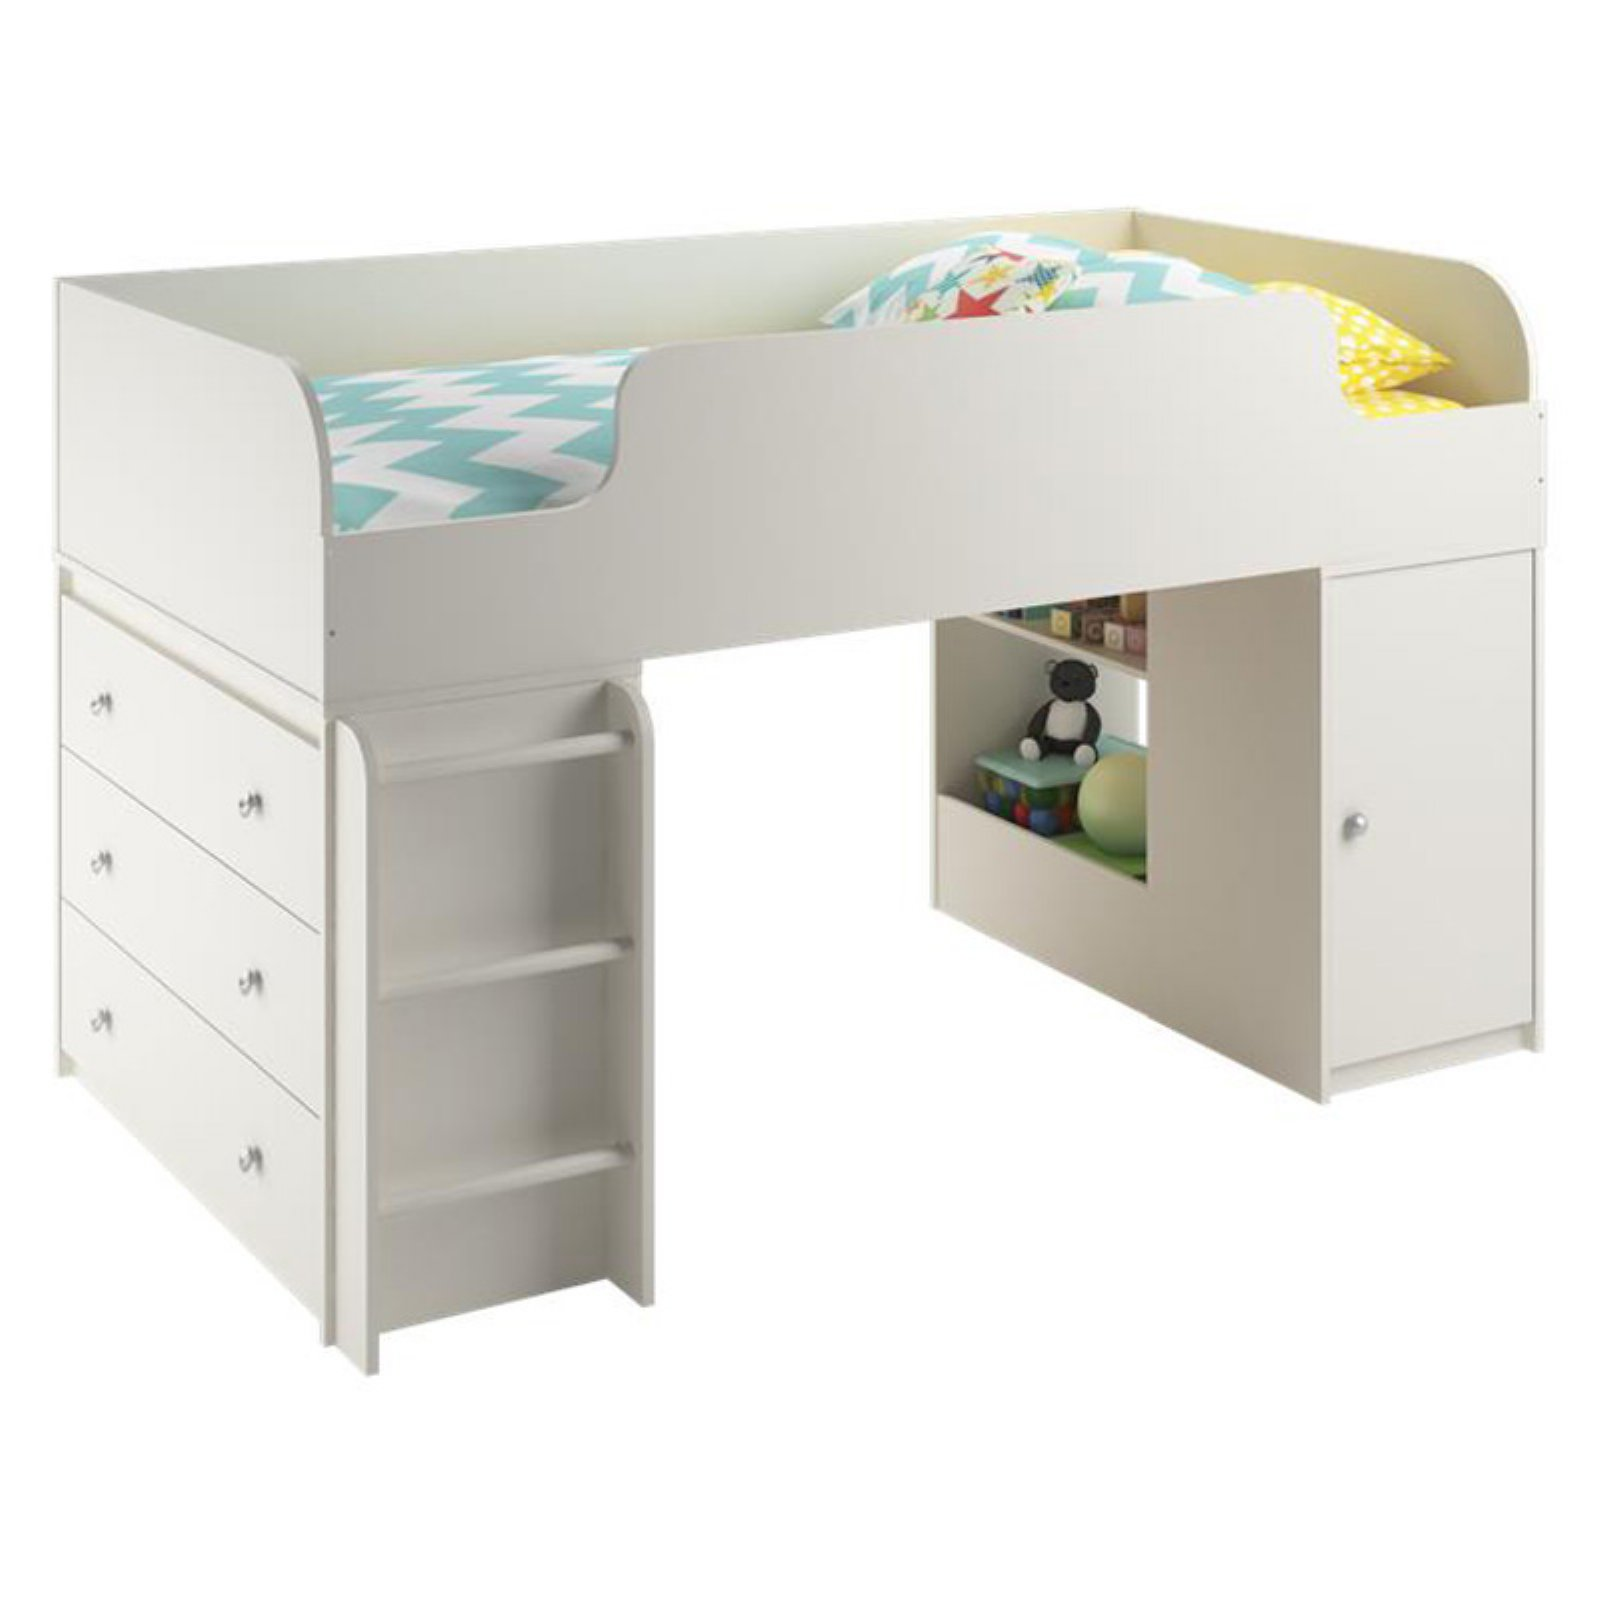 Cosco Elements Loft Bed with 3 Drawer Dresser and Toy Box Bookcase